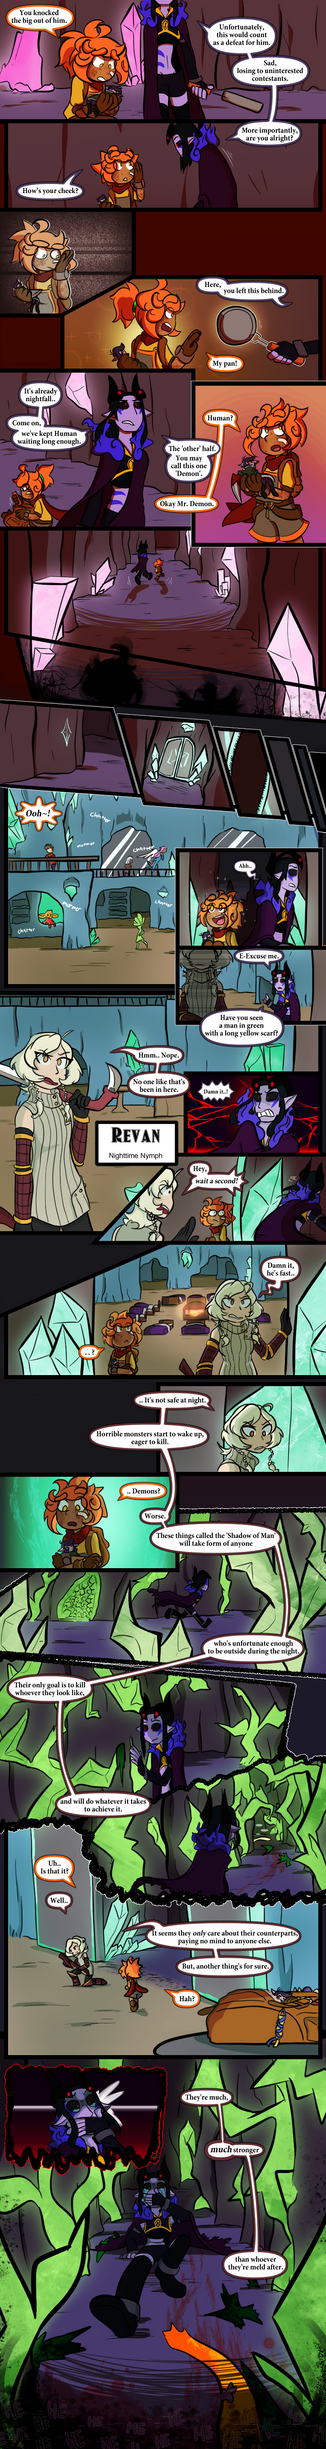 Higher World OCT Round 1(end) - Page 10 by sarahthecat